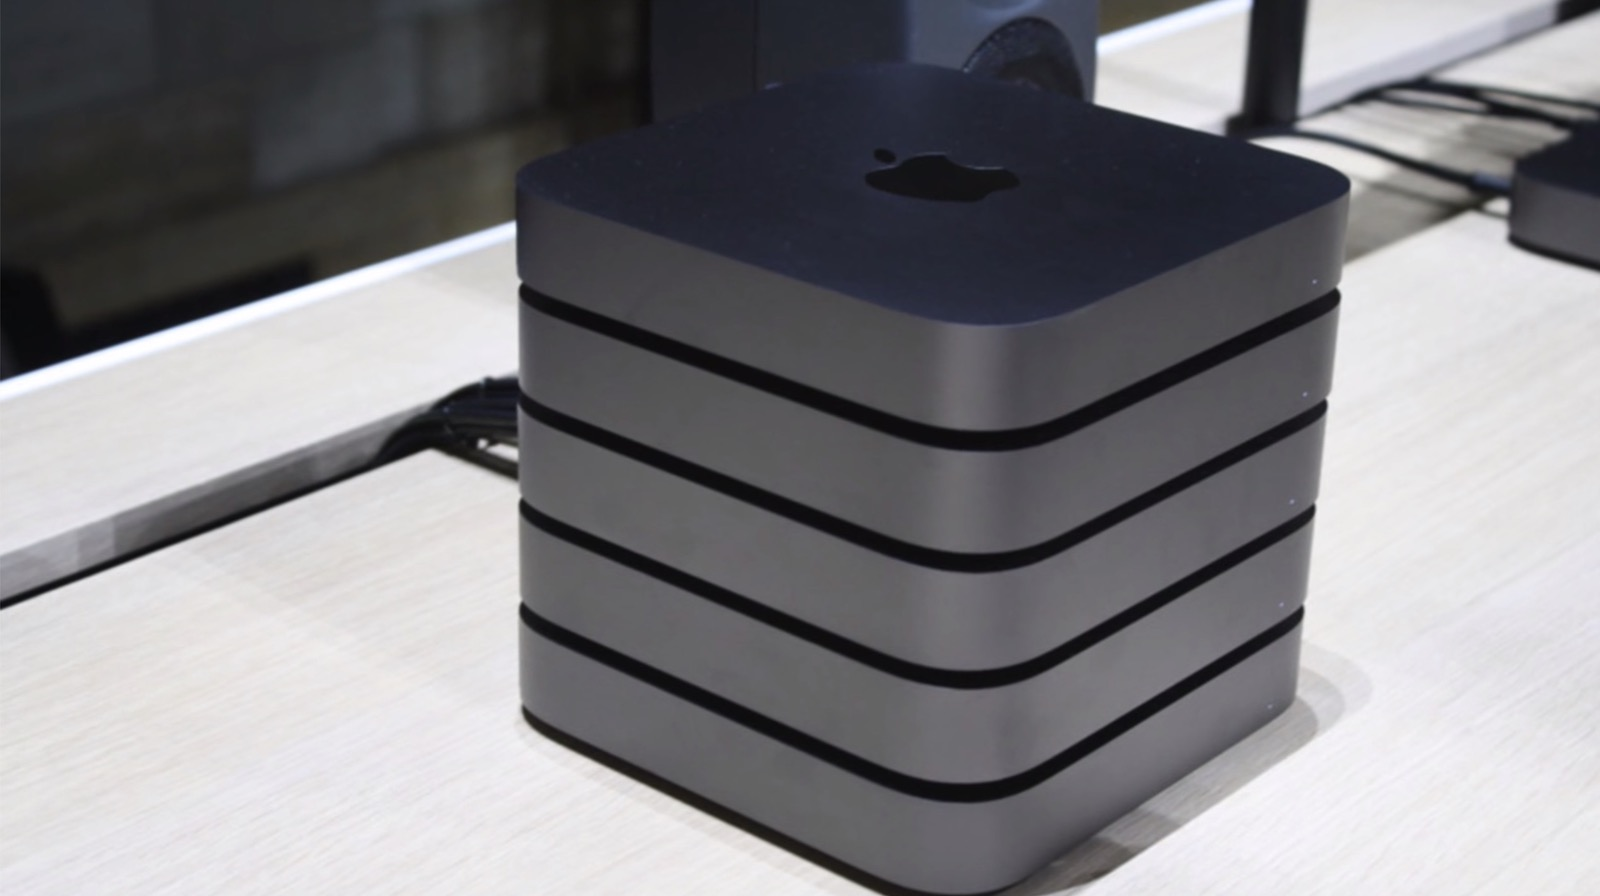 Mac mini stacked